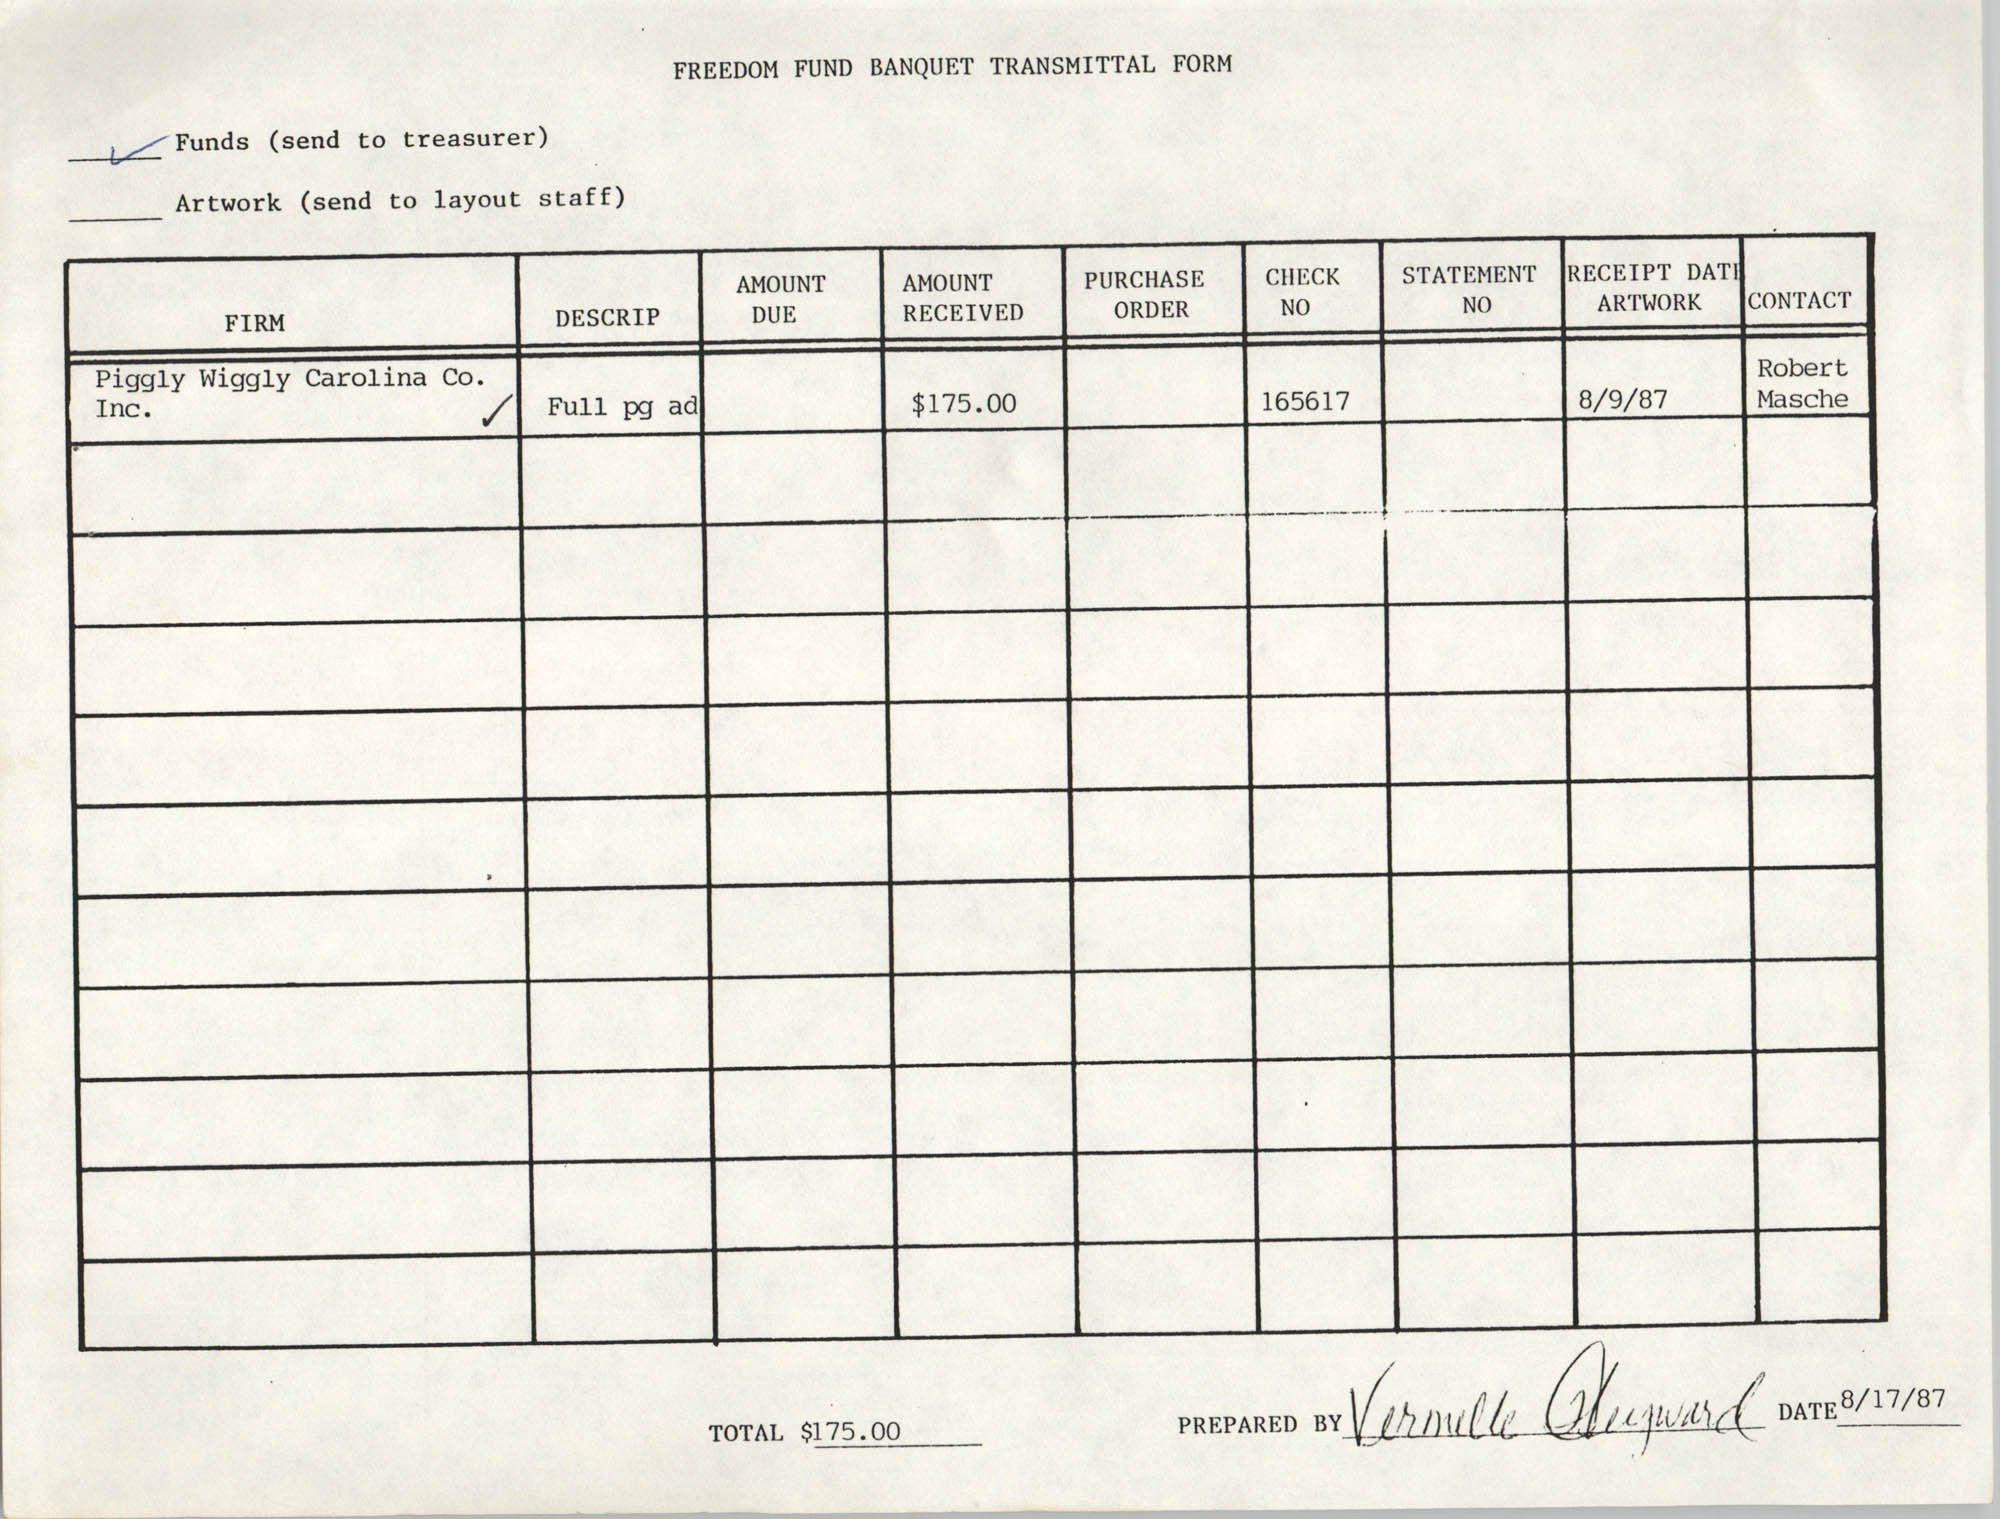 Freedom Fund Banquet Transmittal Forms, August 17, 1987, Page 2